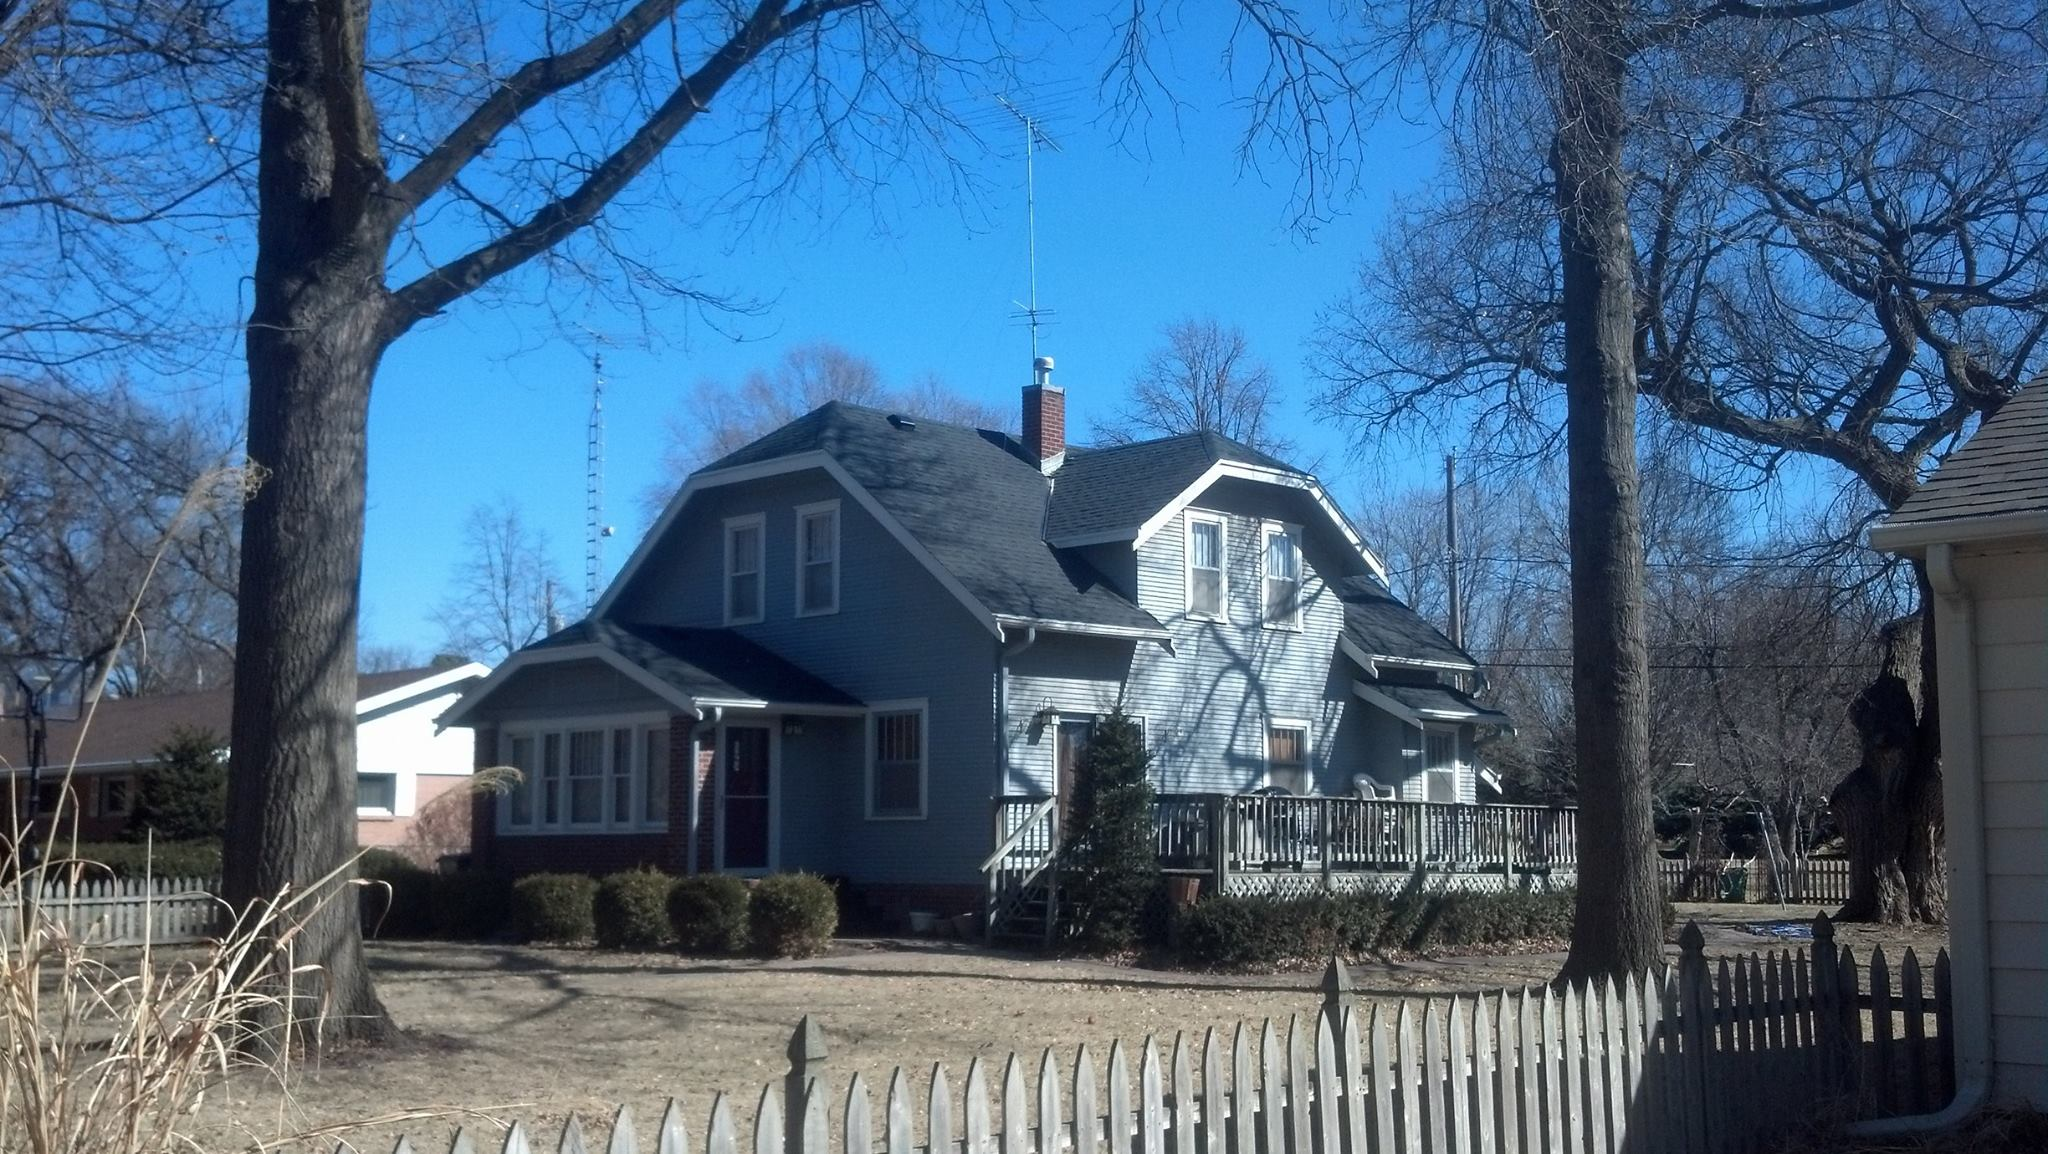 Nelson Contracting Llc In Lincoln Ne 68504